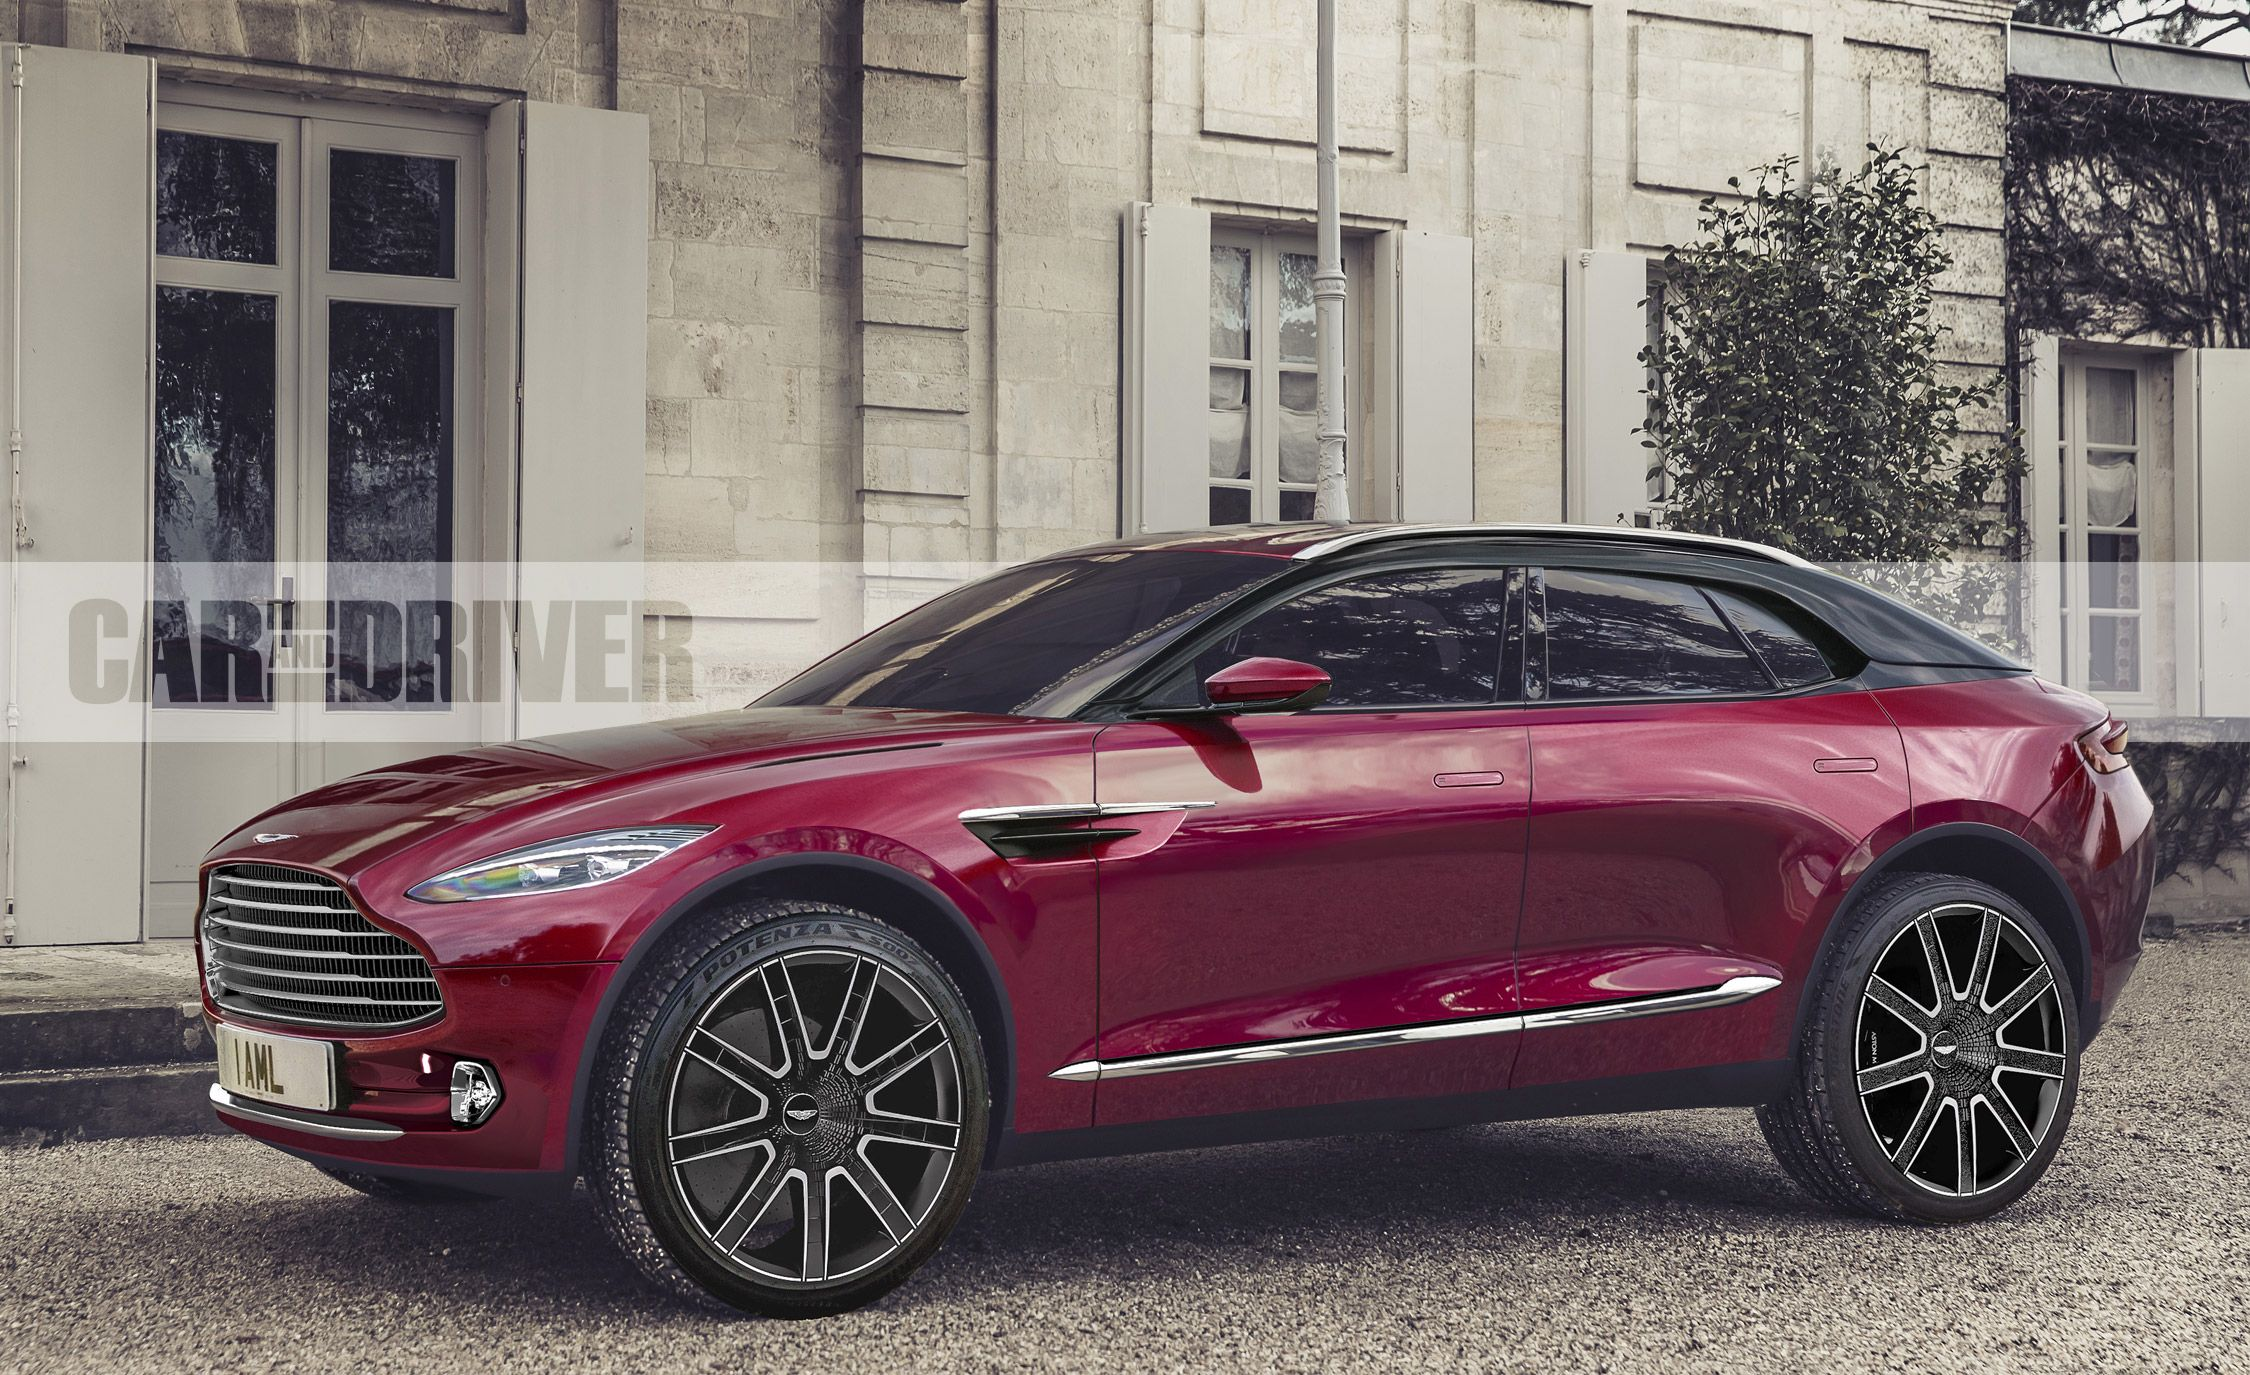 2018 Suvs Worth Waiting For >> The 2020 Aston Martin DBX Is a Car Worth Waiting For | Feature | Car and Driver